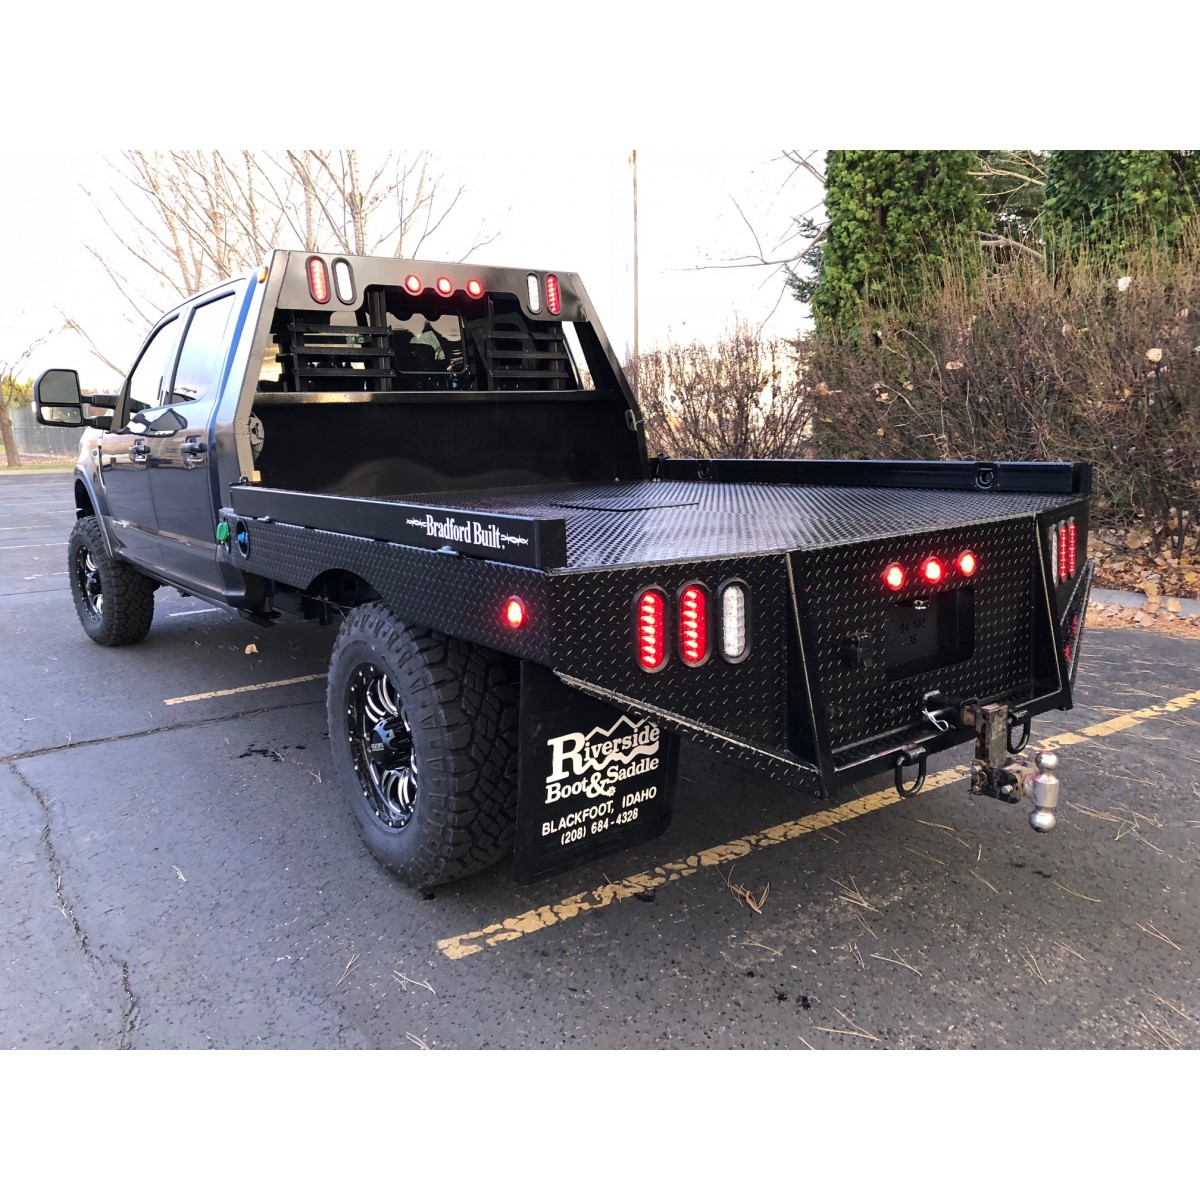 ford truck trailer wiring ford truck trailer plug wiring diagram bradford built flatbed work bed #6